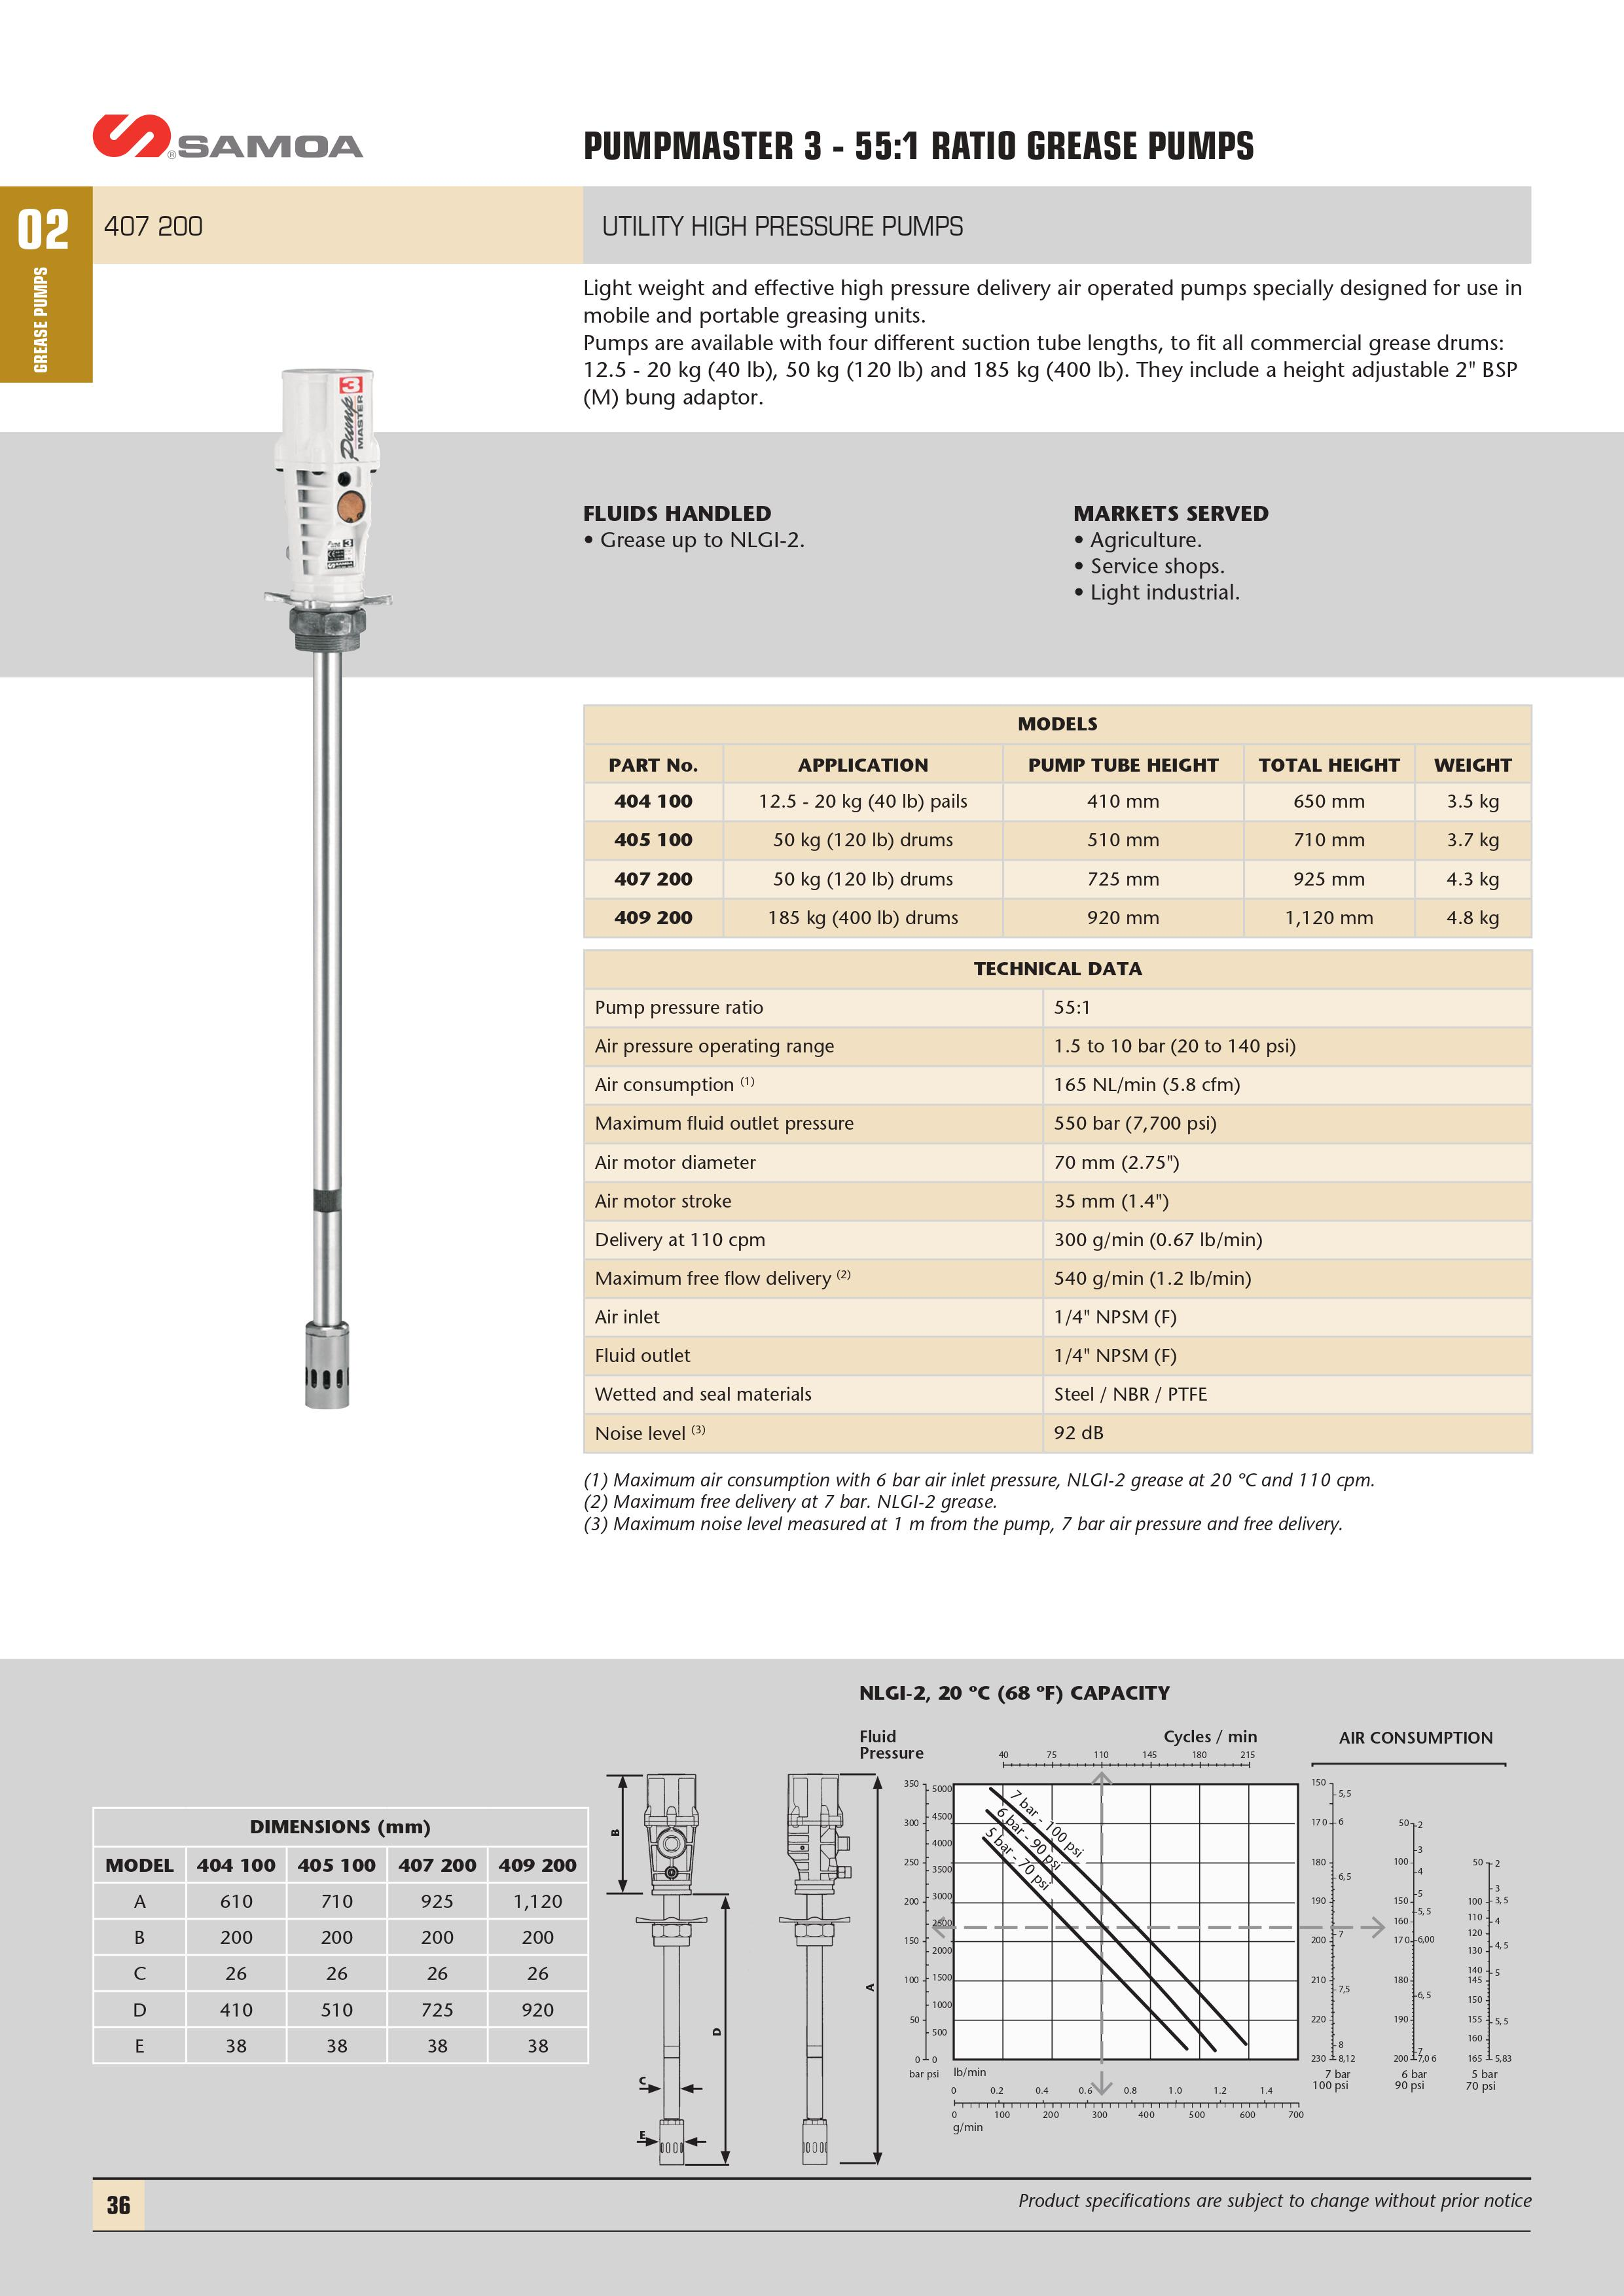 Pumpmaster 3 - 55:1 Ratio Grease Pump Technical Info